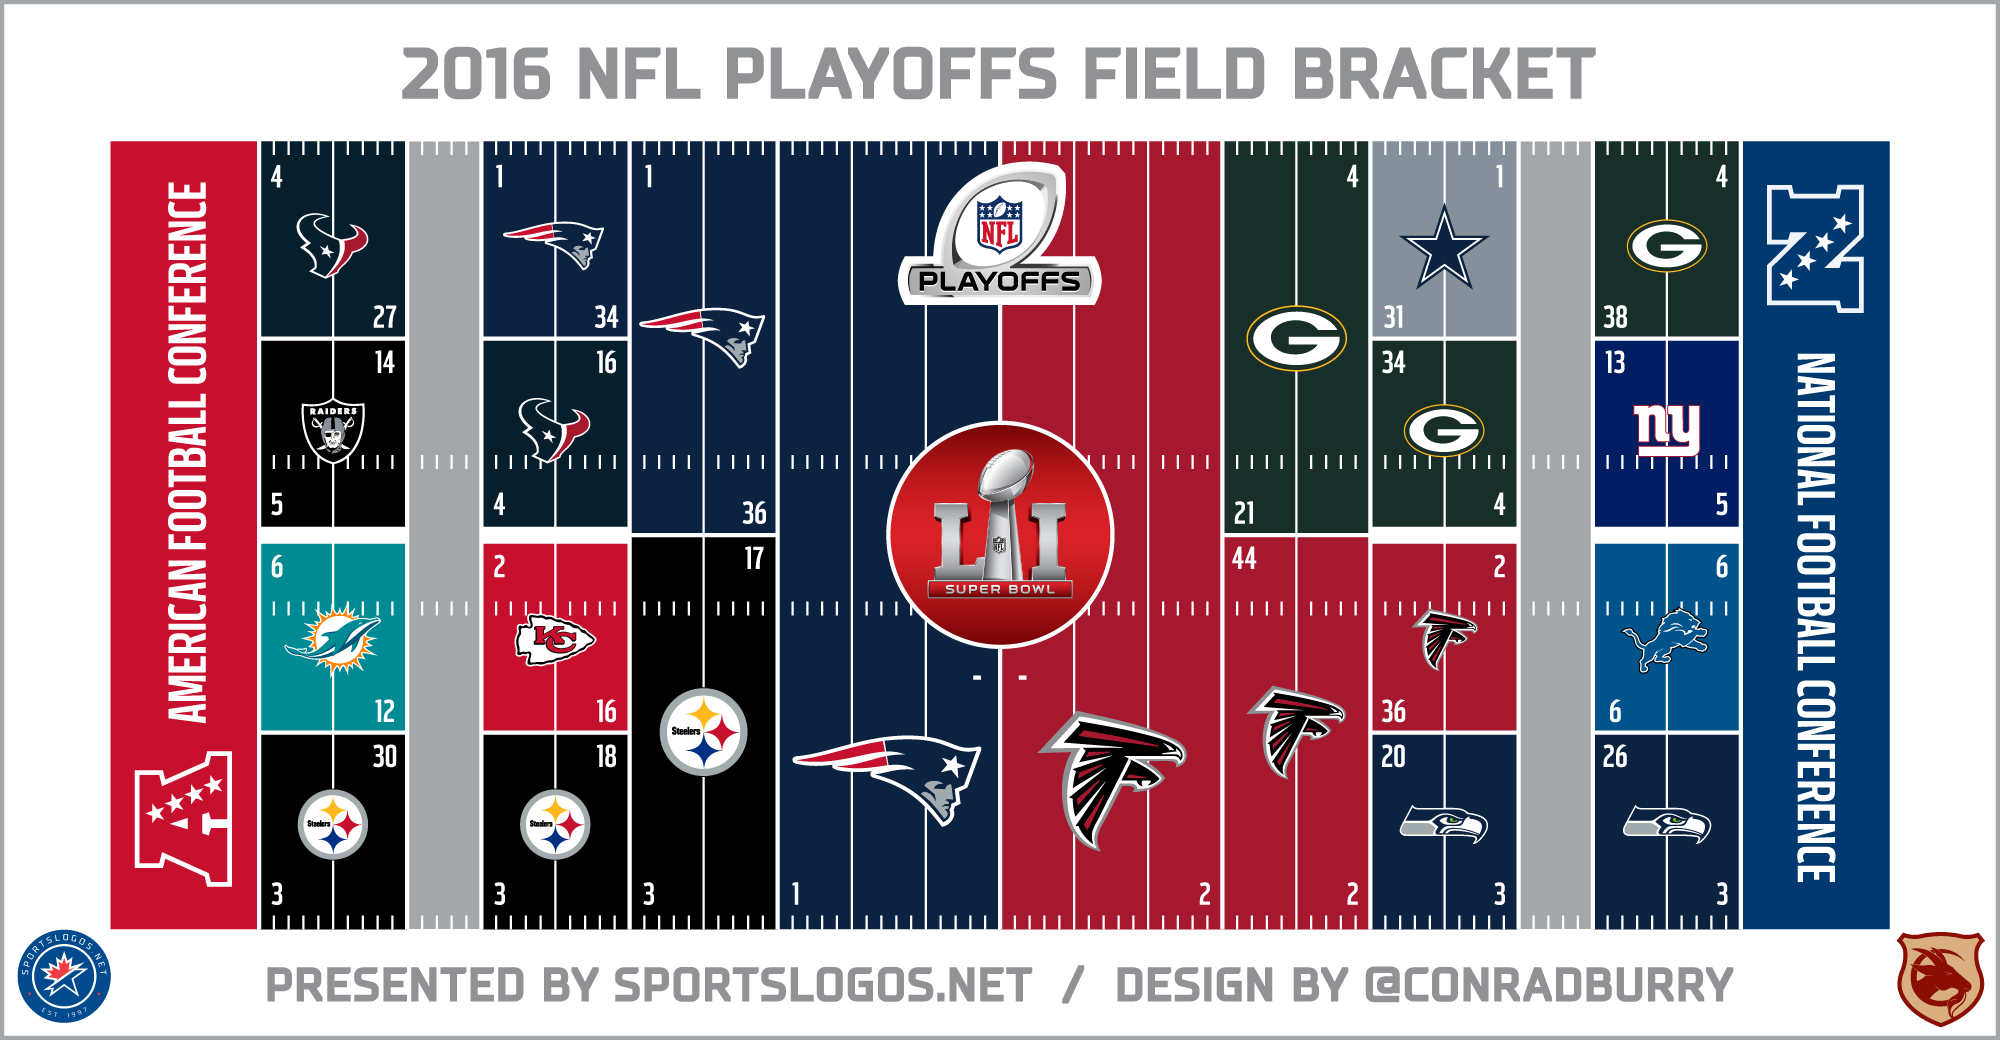 After the NFL Playoffs, Super Bowl LI is Here – The Patriot Post